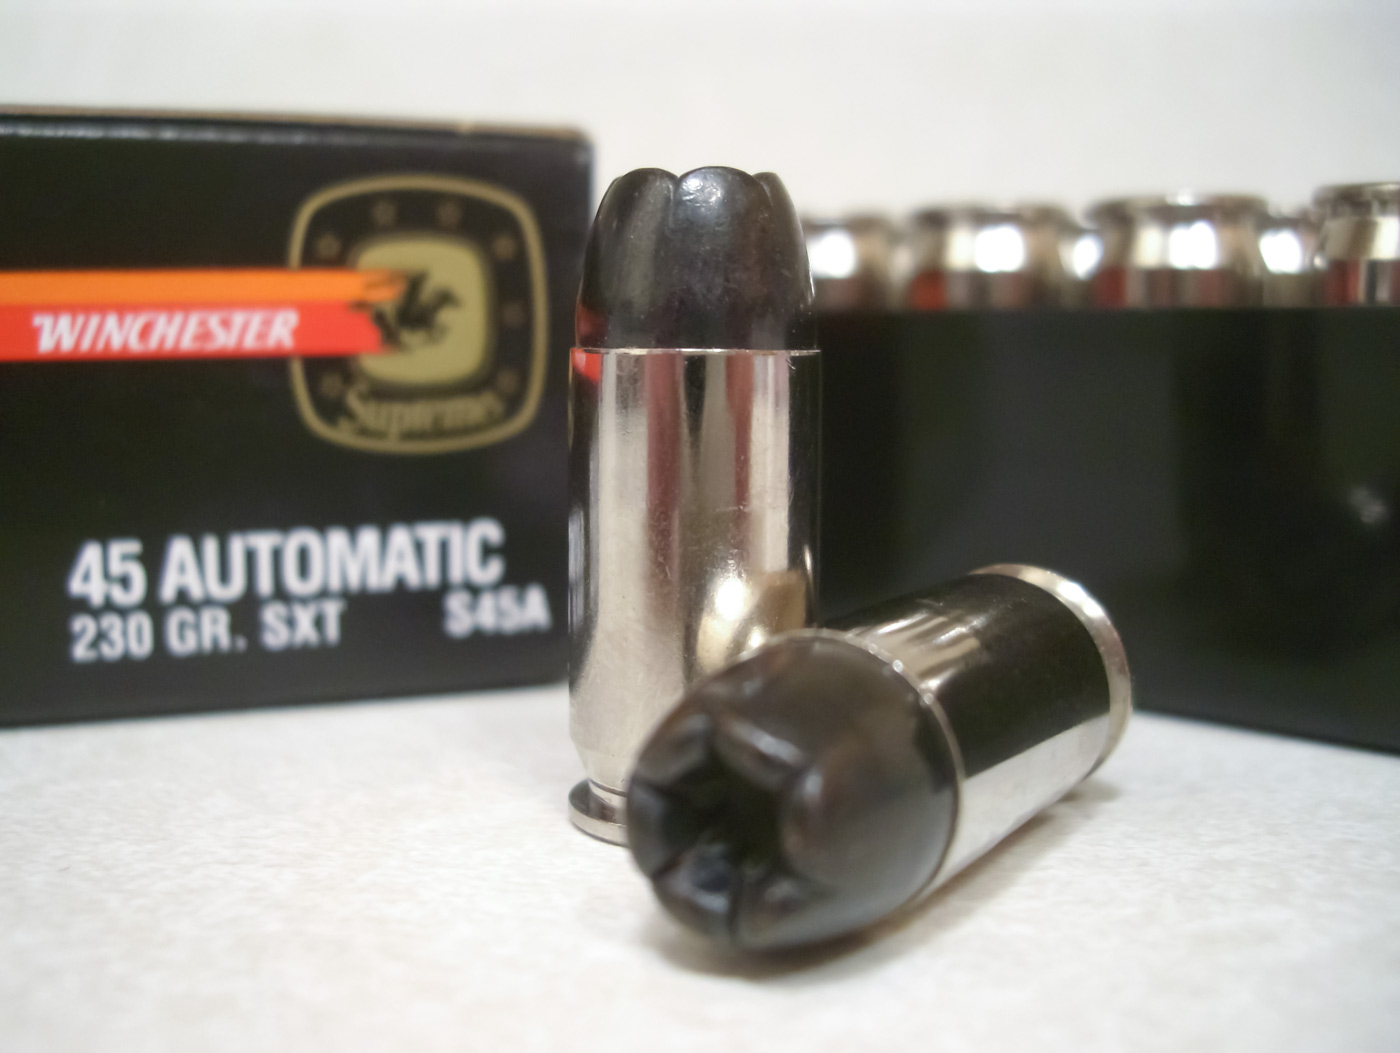 Picture shows a handgun round with shiny case and a black bullet.